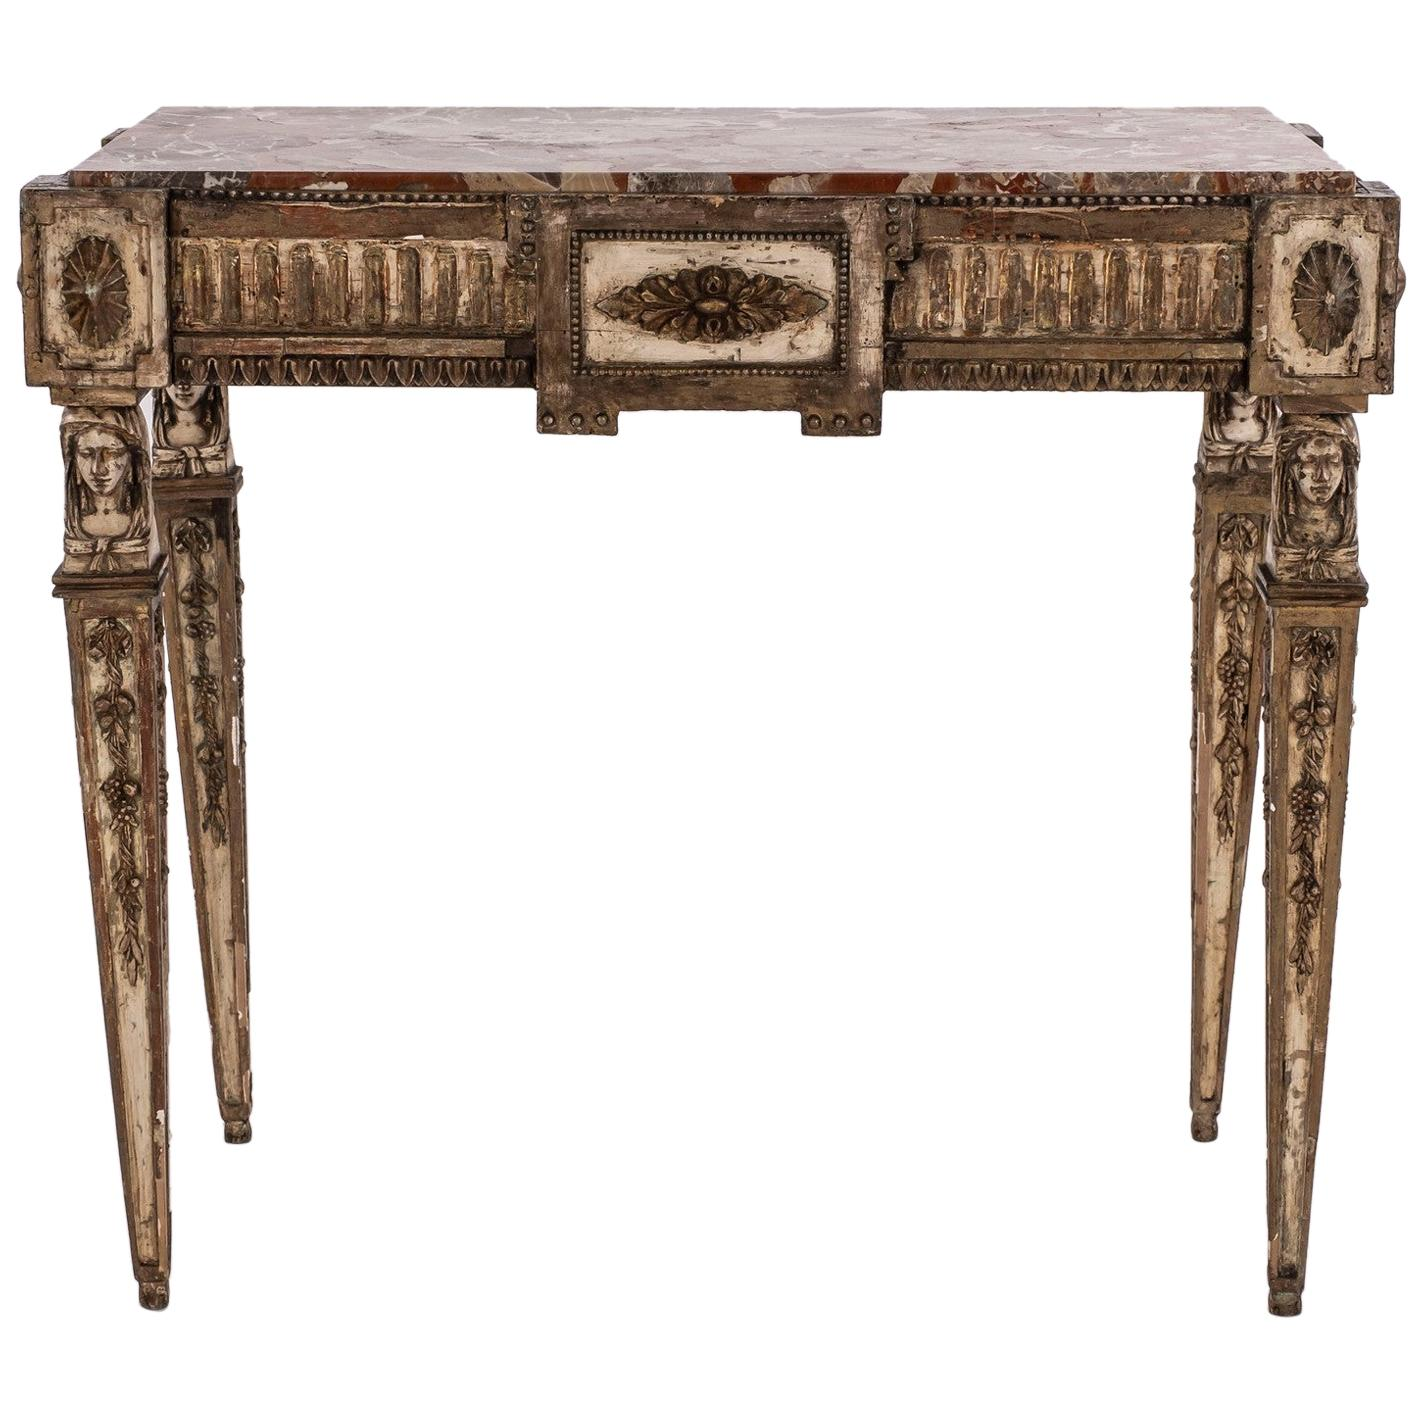 18th Century Louis XVI Giltwood Console with Marble Top